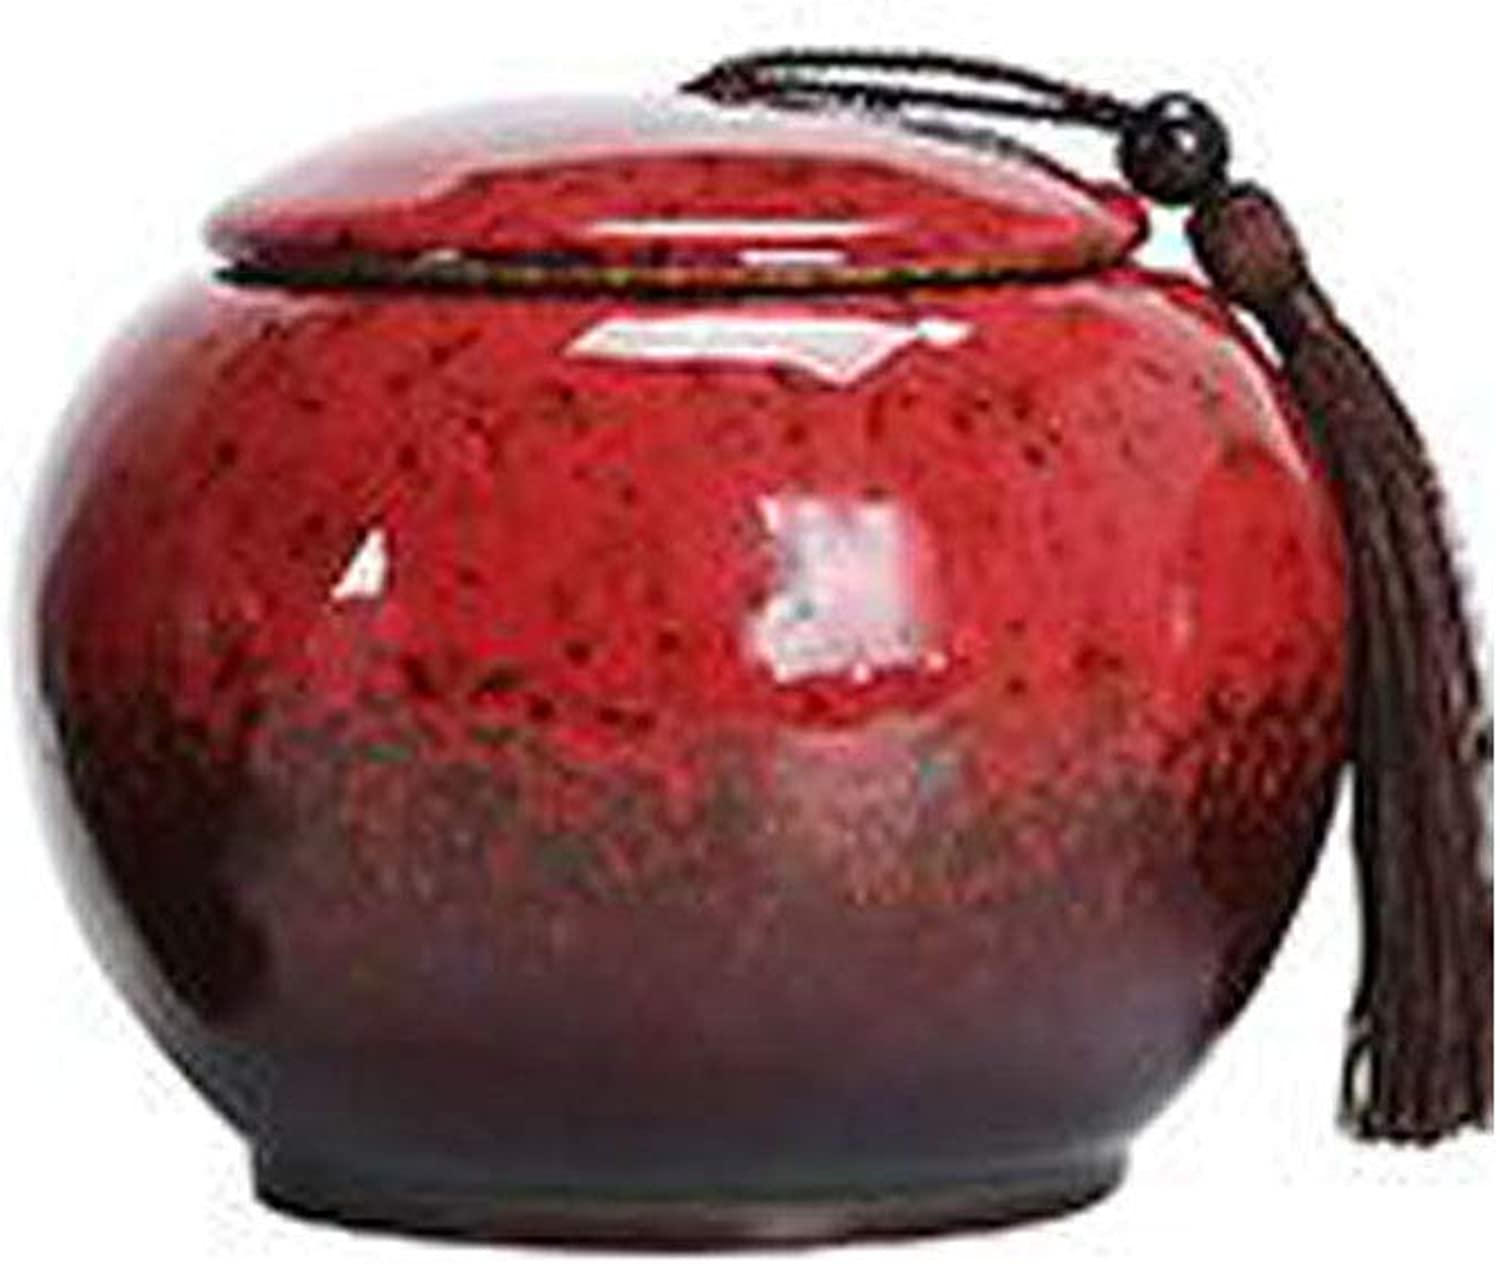 Boyuanweiye Commemorative Cremation Ceremony Dedicated to Ashes  Affordable Ceramic Series for Dog Funeral  5.6inch Multicolor Diameter, kiln bluee Good Material (color   Red)